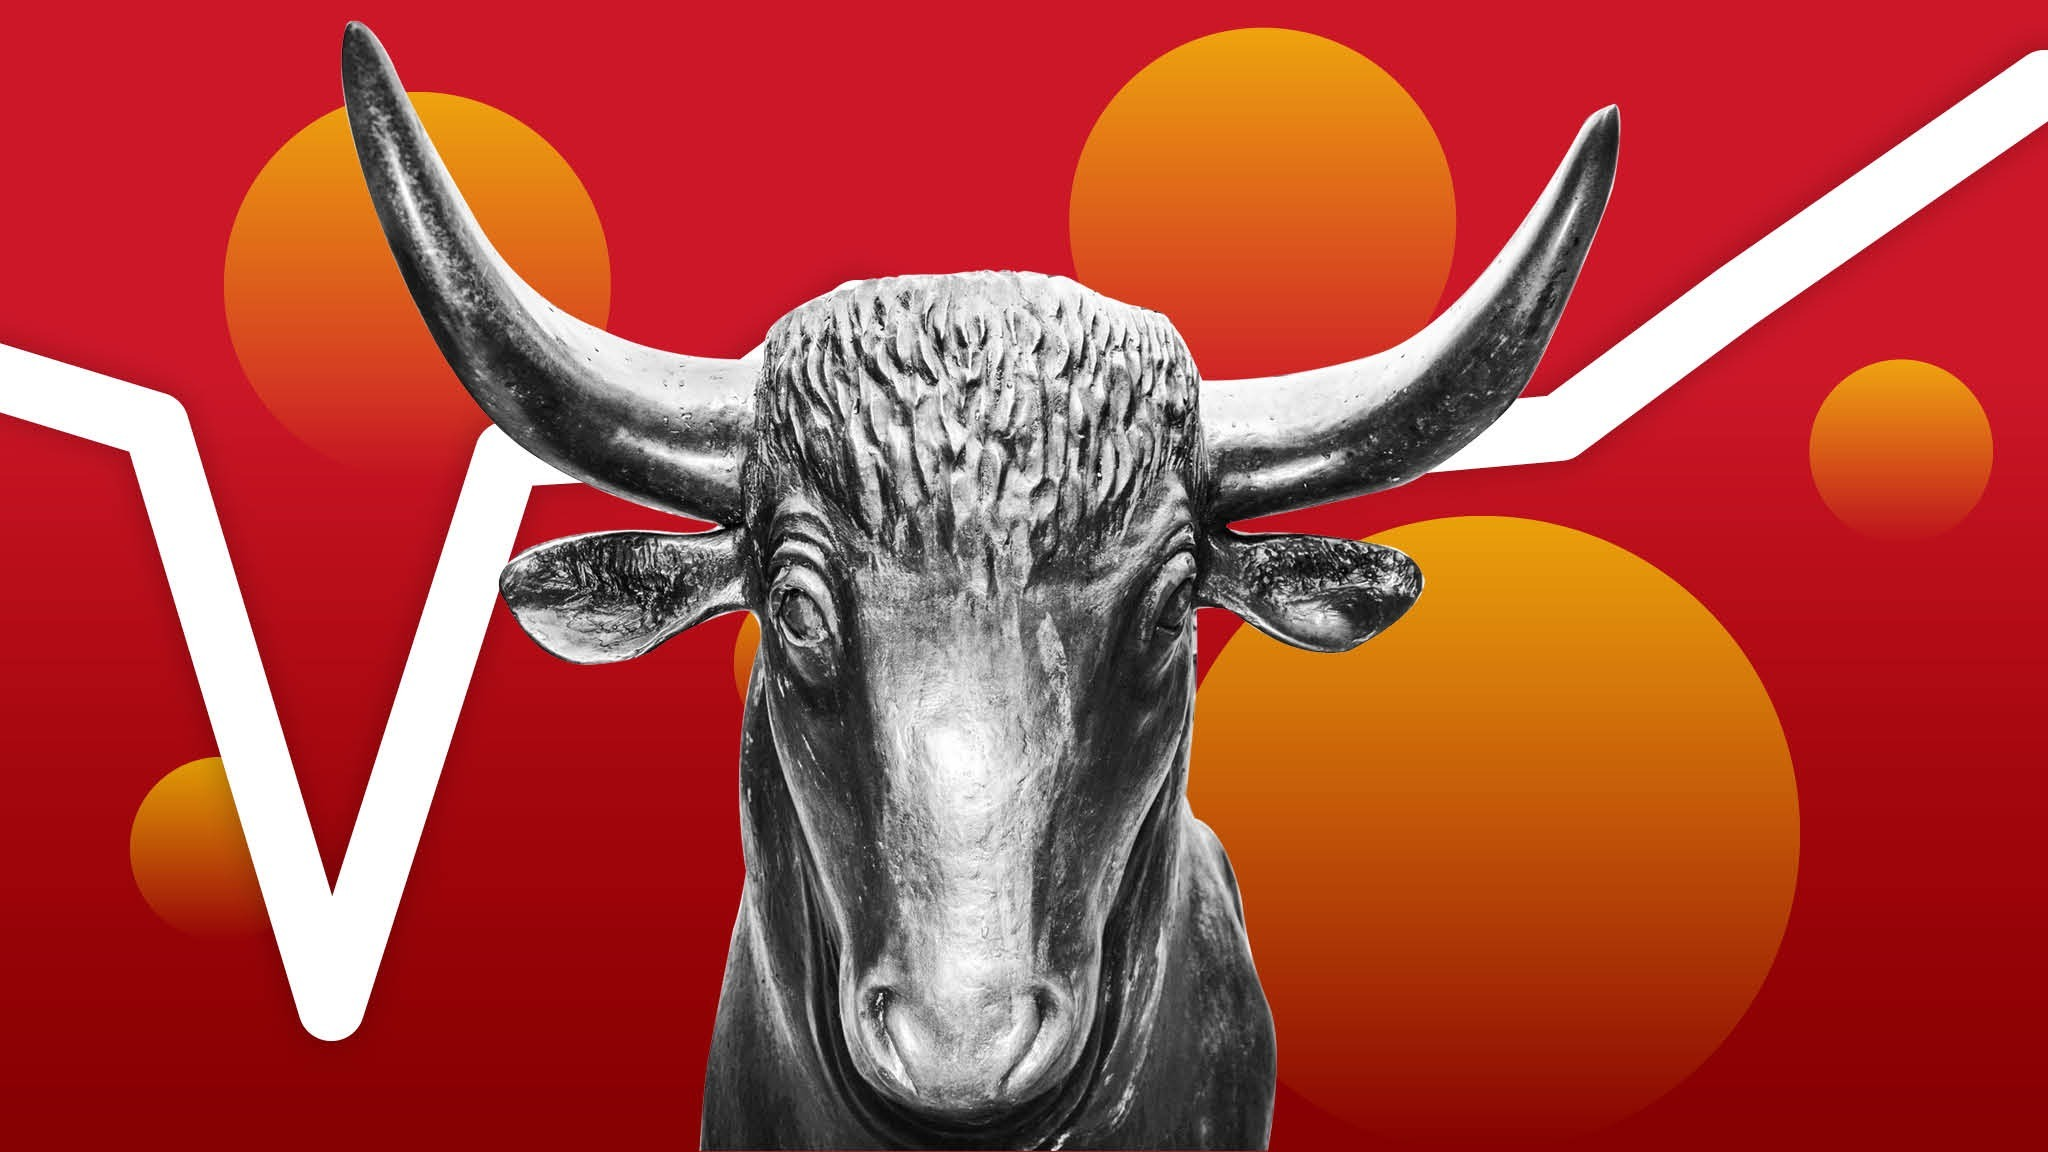 Investors set for commodities 'bull run' as prices rise in tandem |  Financial Times